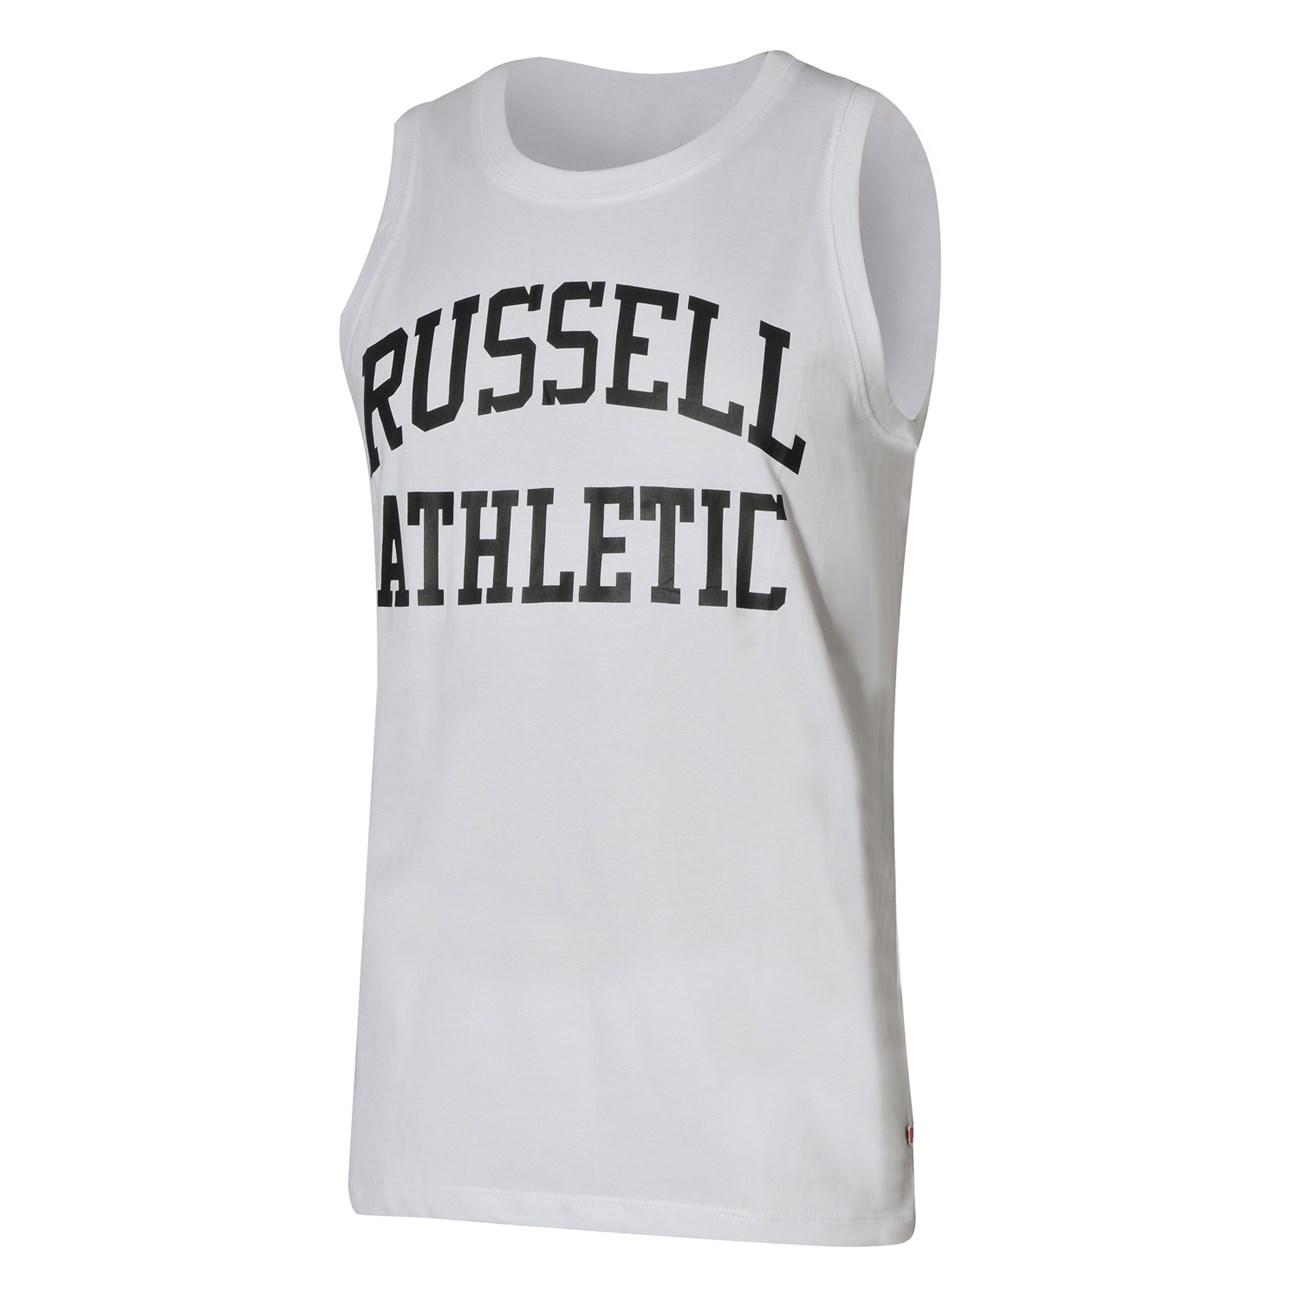 2fdefdb82ea5 RUSSELL ATHLETIC CLASSIC LOGO SINGLET   Ανδρικά Αμάνικα T-shirts ...